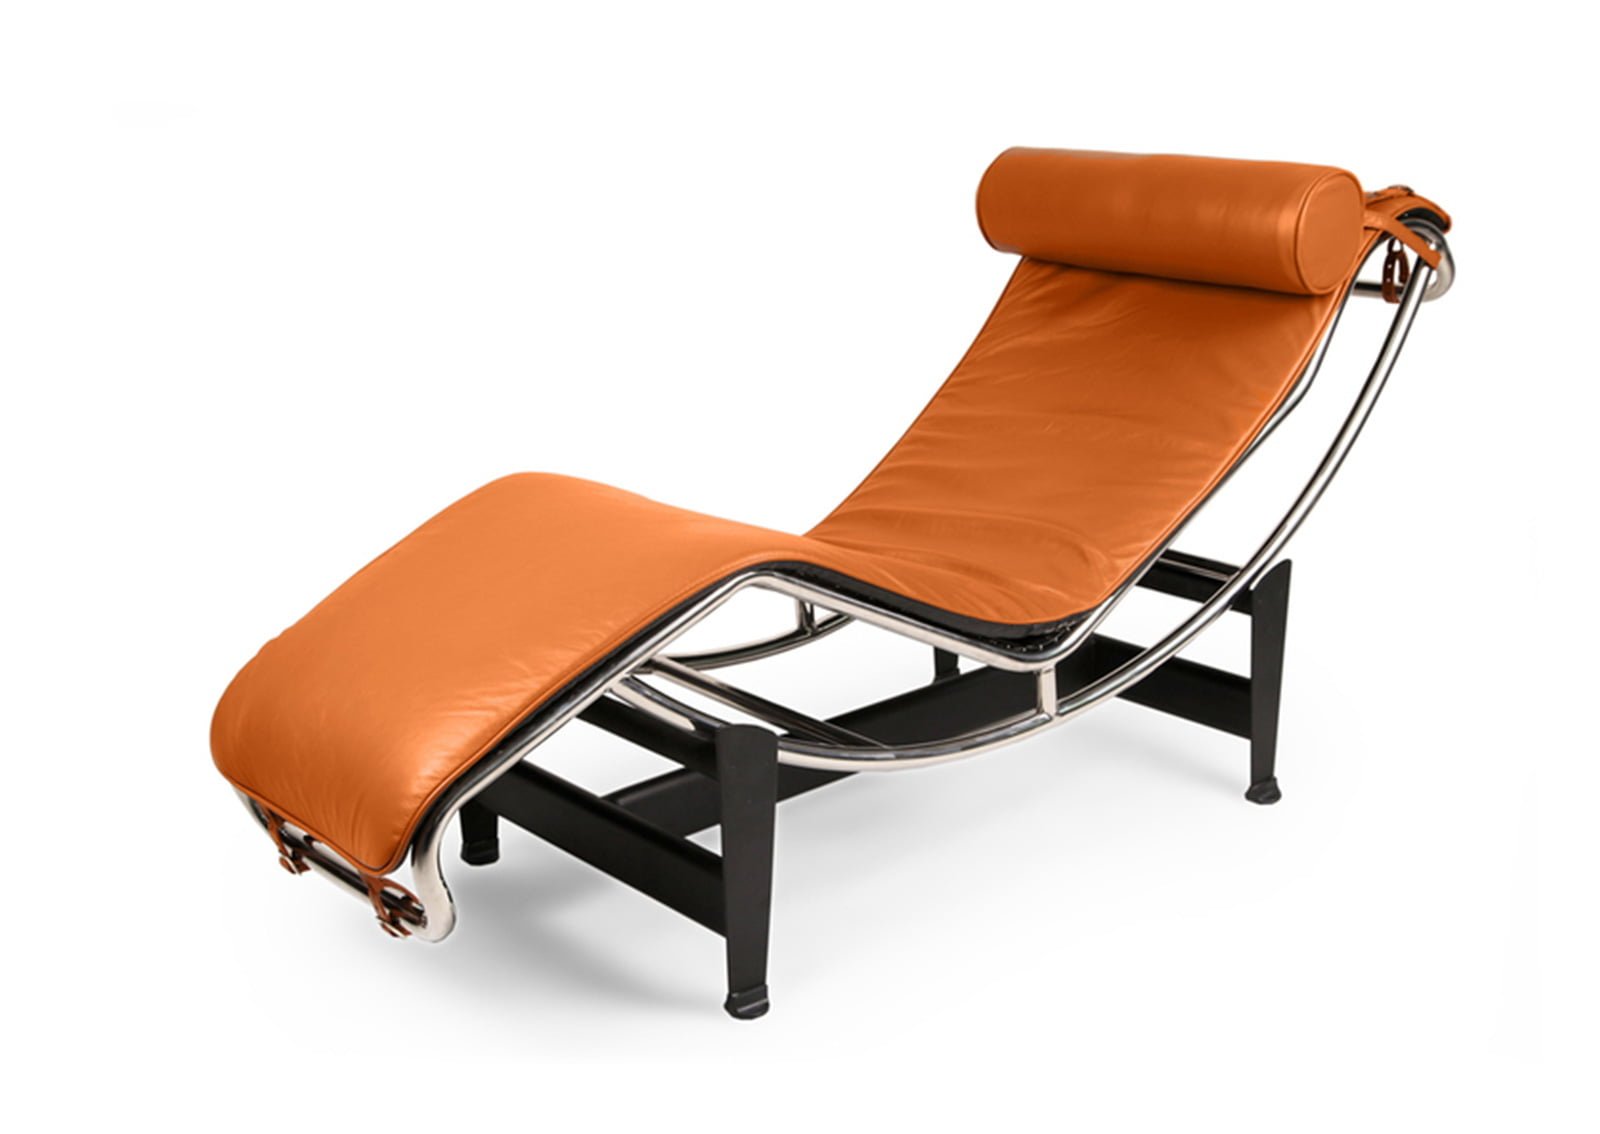 Lc4 chaise lounge le corbusier style furnishplus for Chaise le corbusier lc4